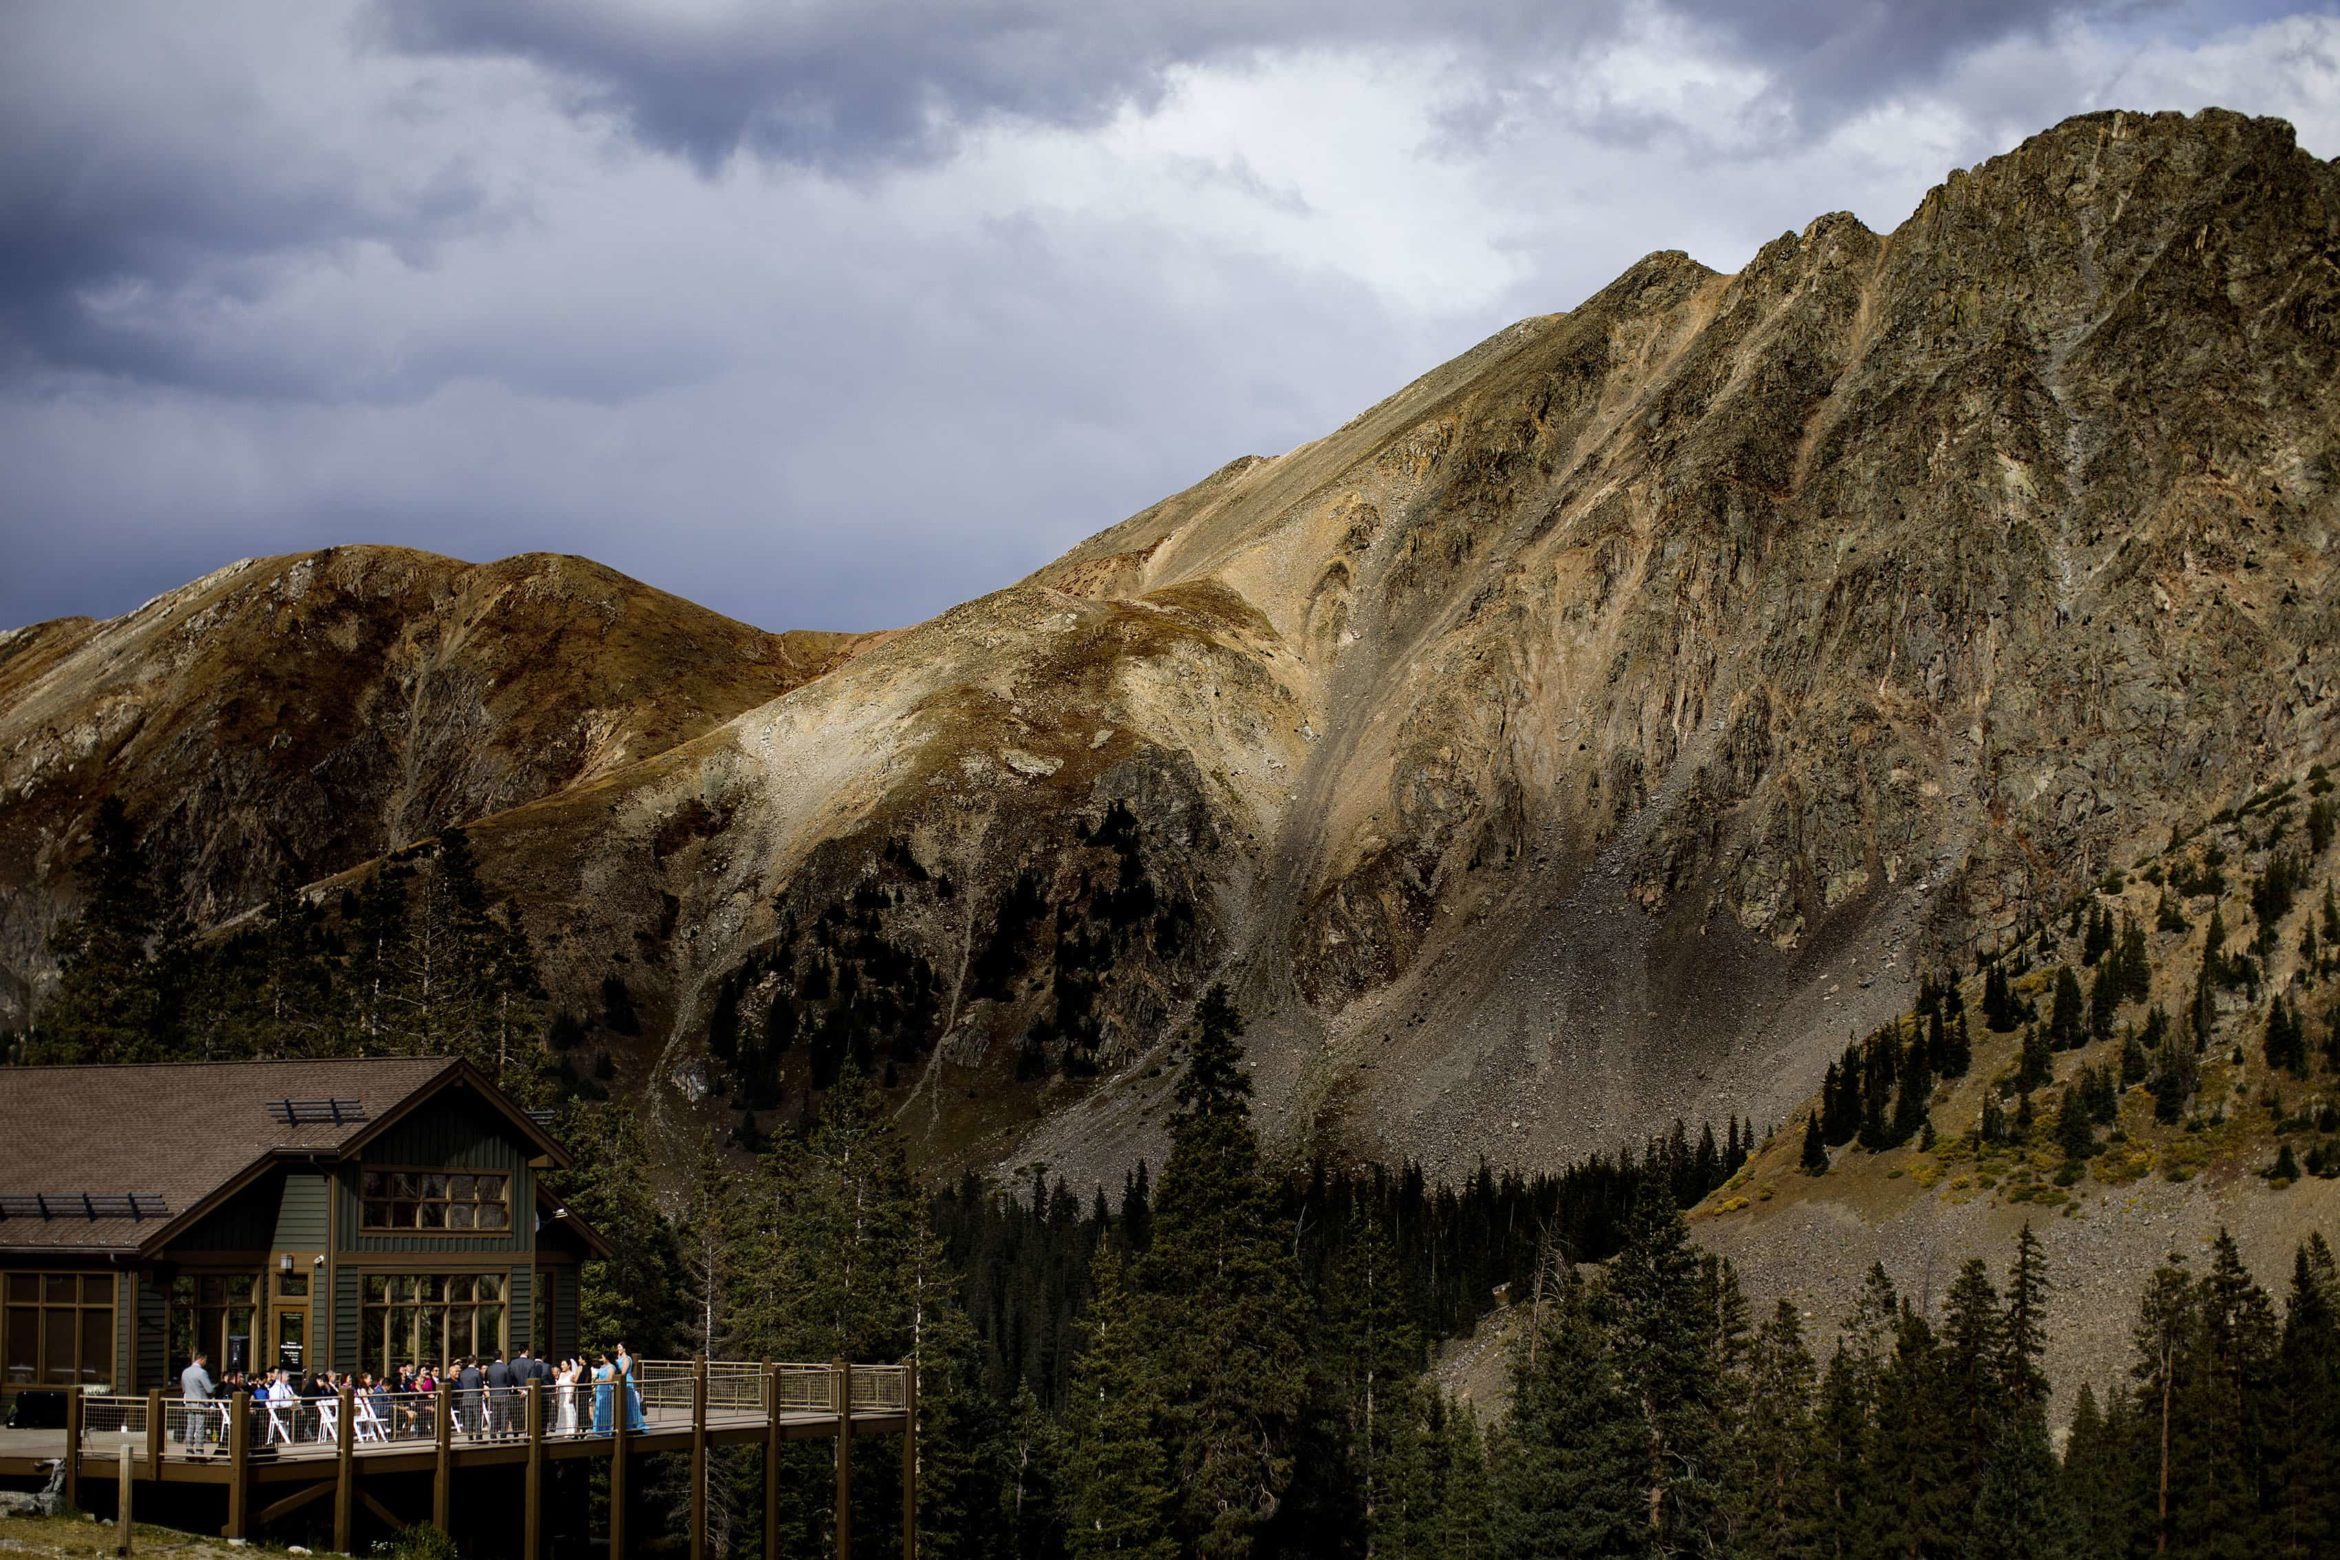 A view of David and Xinya's Arapahoe Basin wedding ceremony at Black Mountain Lodge in Colorado